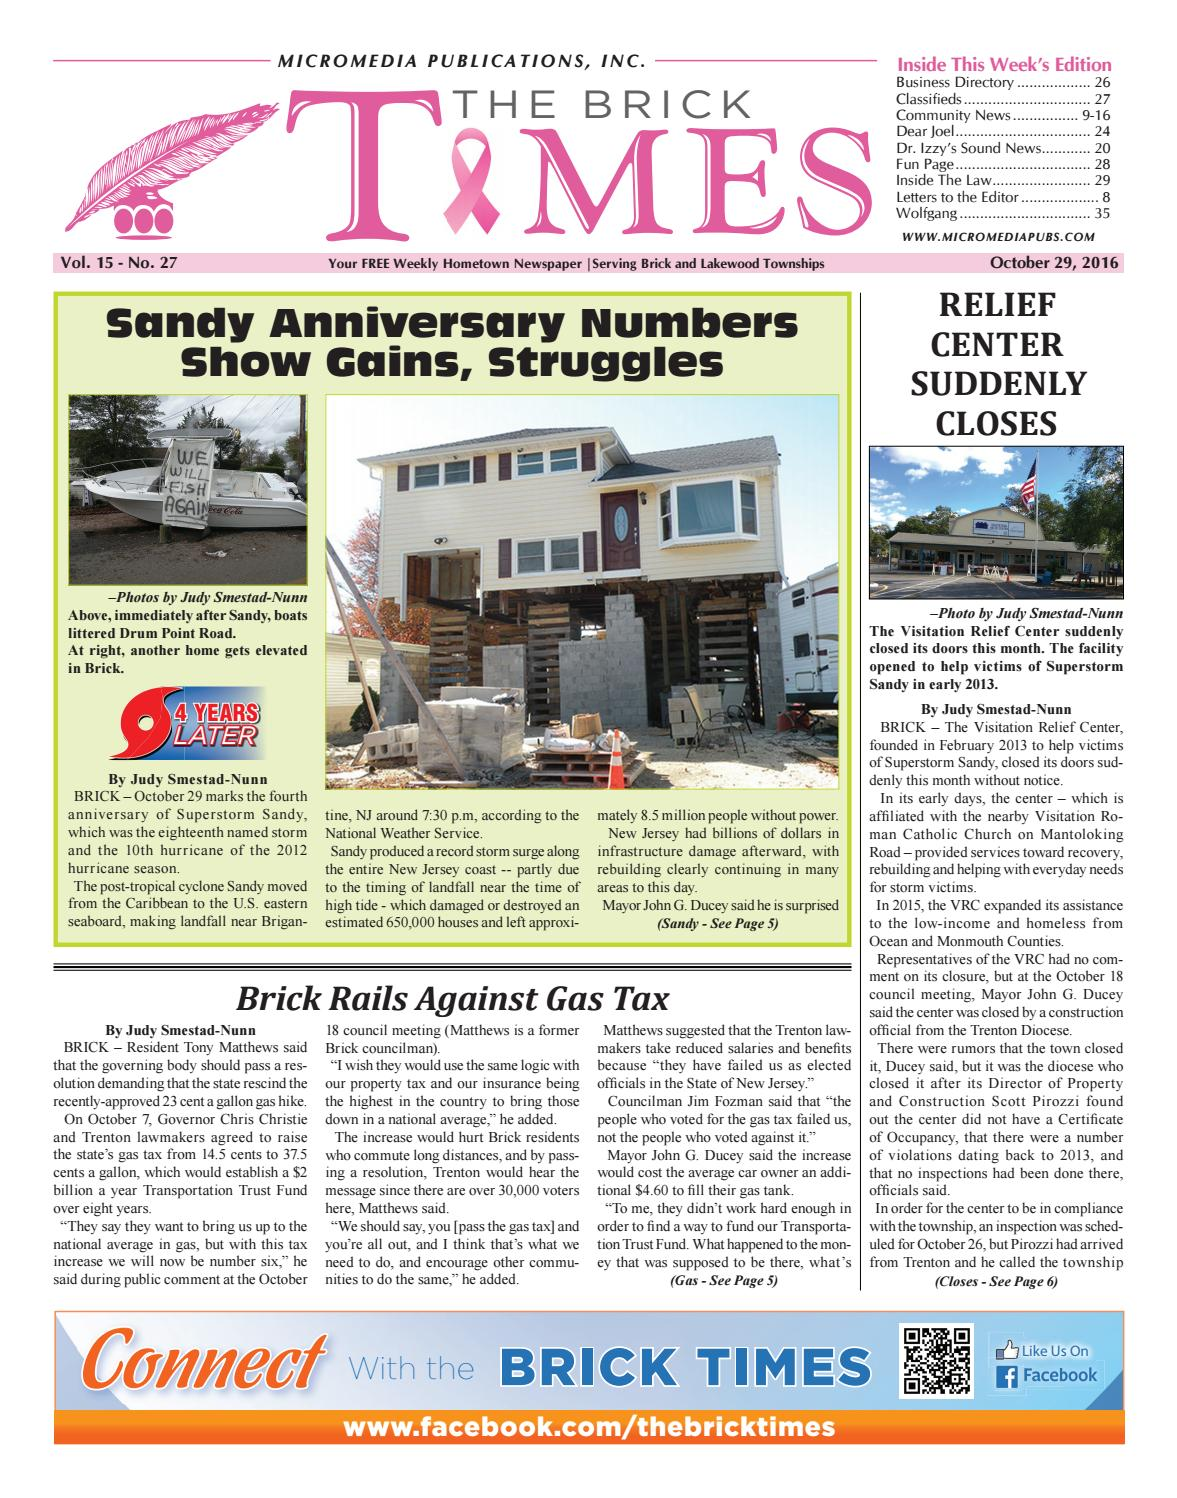 2016-10-29 - The Brick Times by Micromedia Publications - issuu